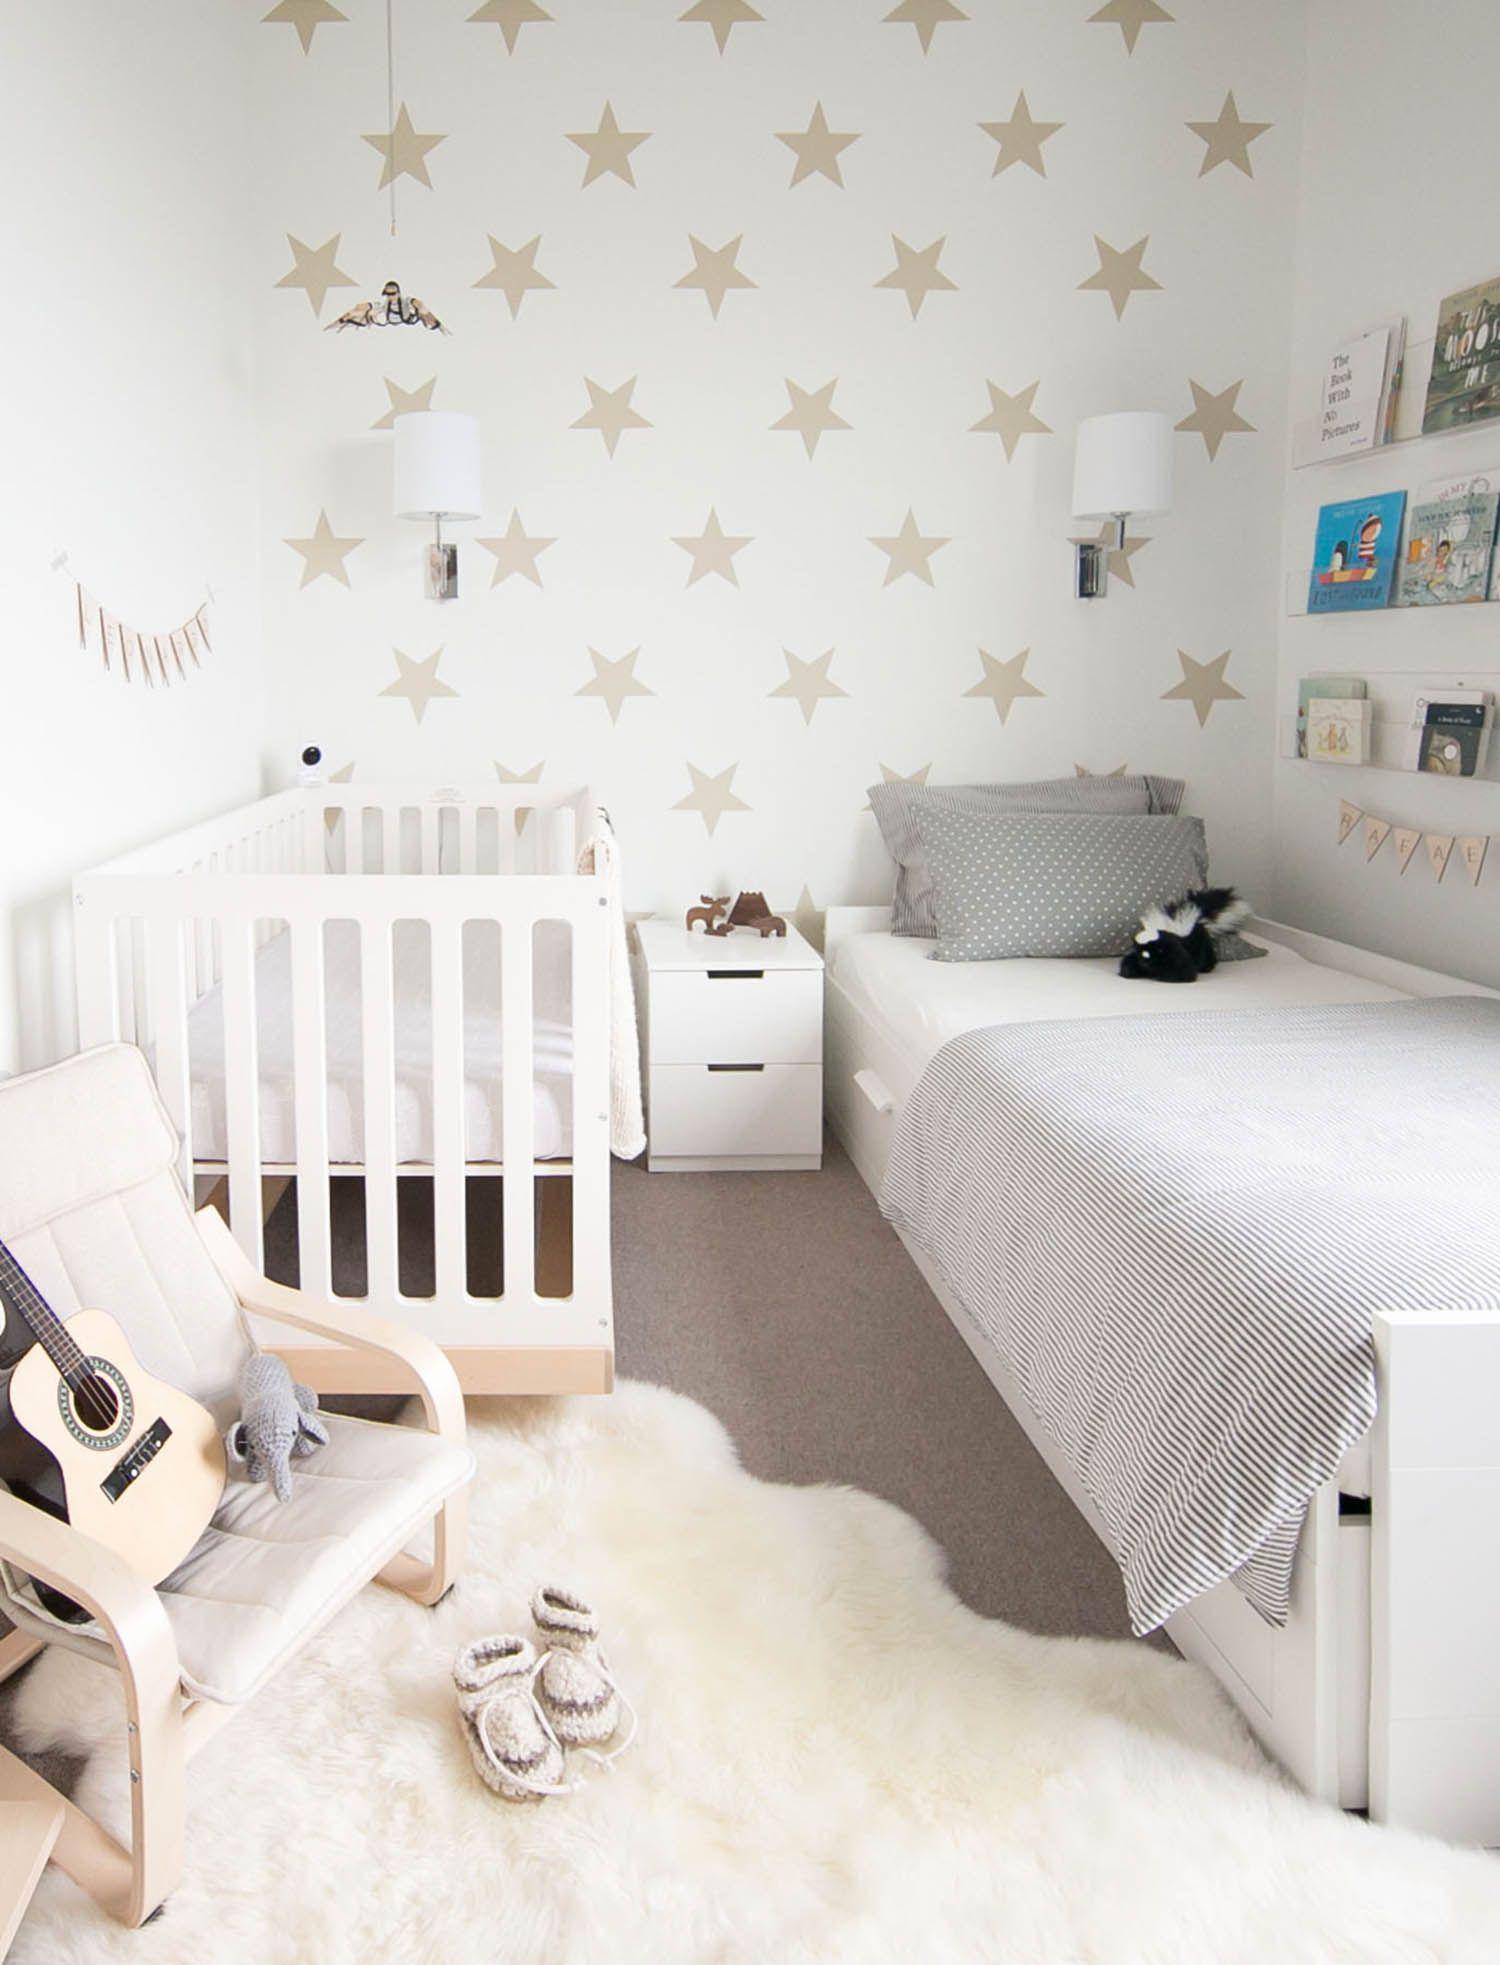 Inspiration Shared Kids Rooms Side By Side Beds Winter Daisy Interiors For Children Baby And Toddler Shared Room Tiny Kids Room Kids Rooms Shared